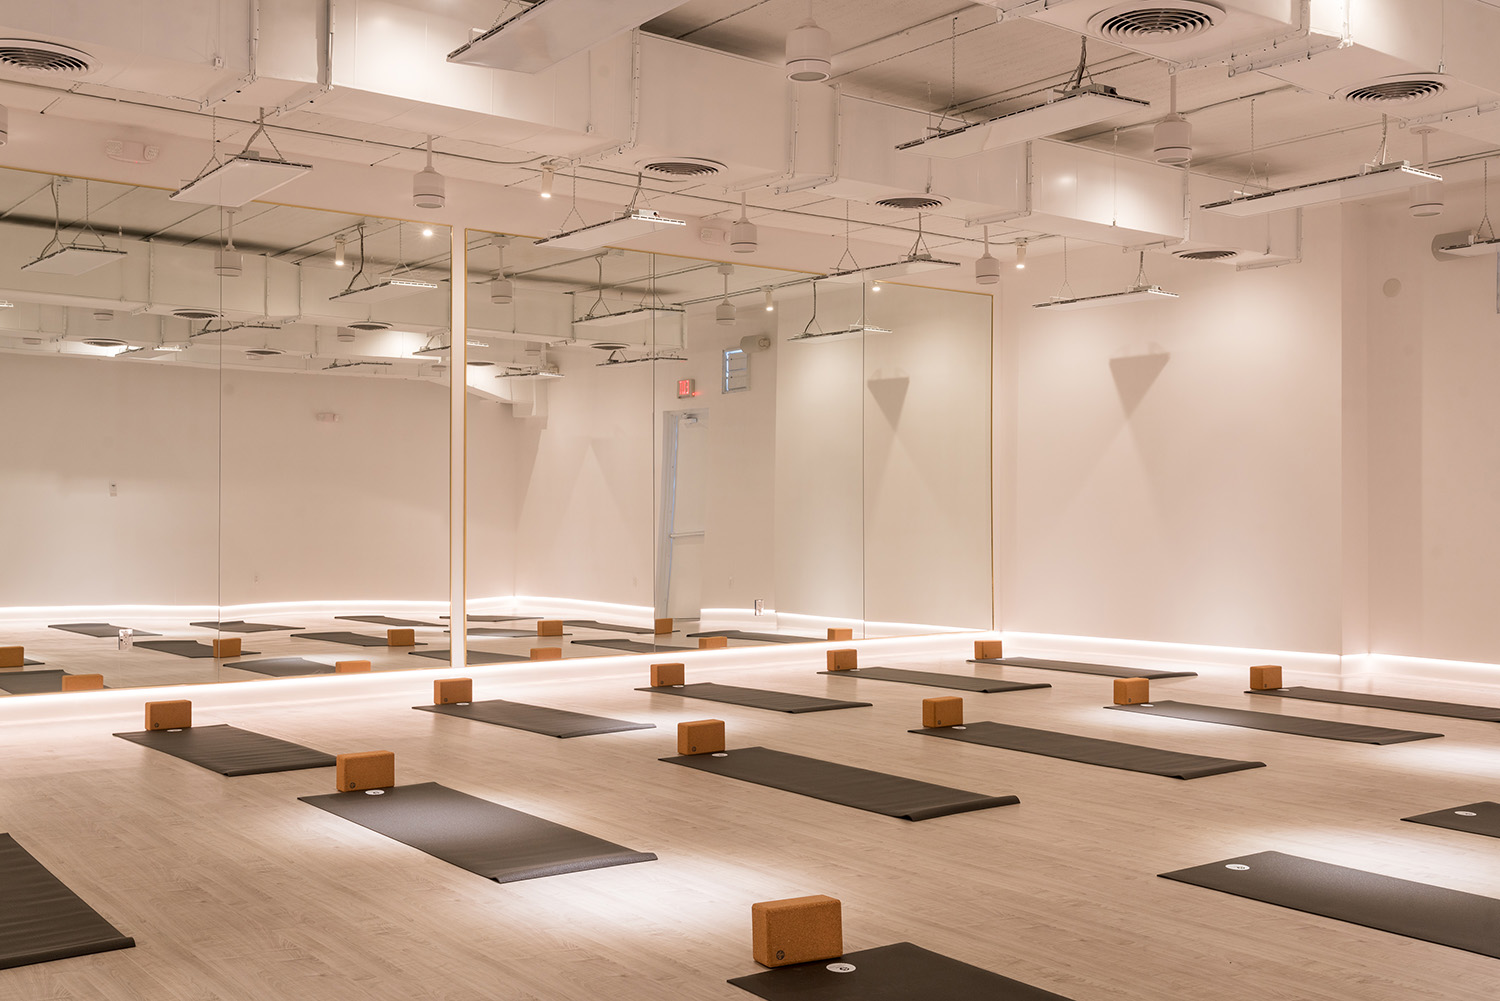 resized Yoga studio.jpg